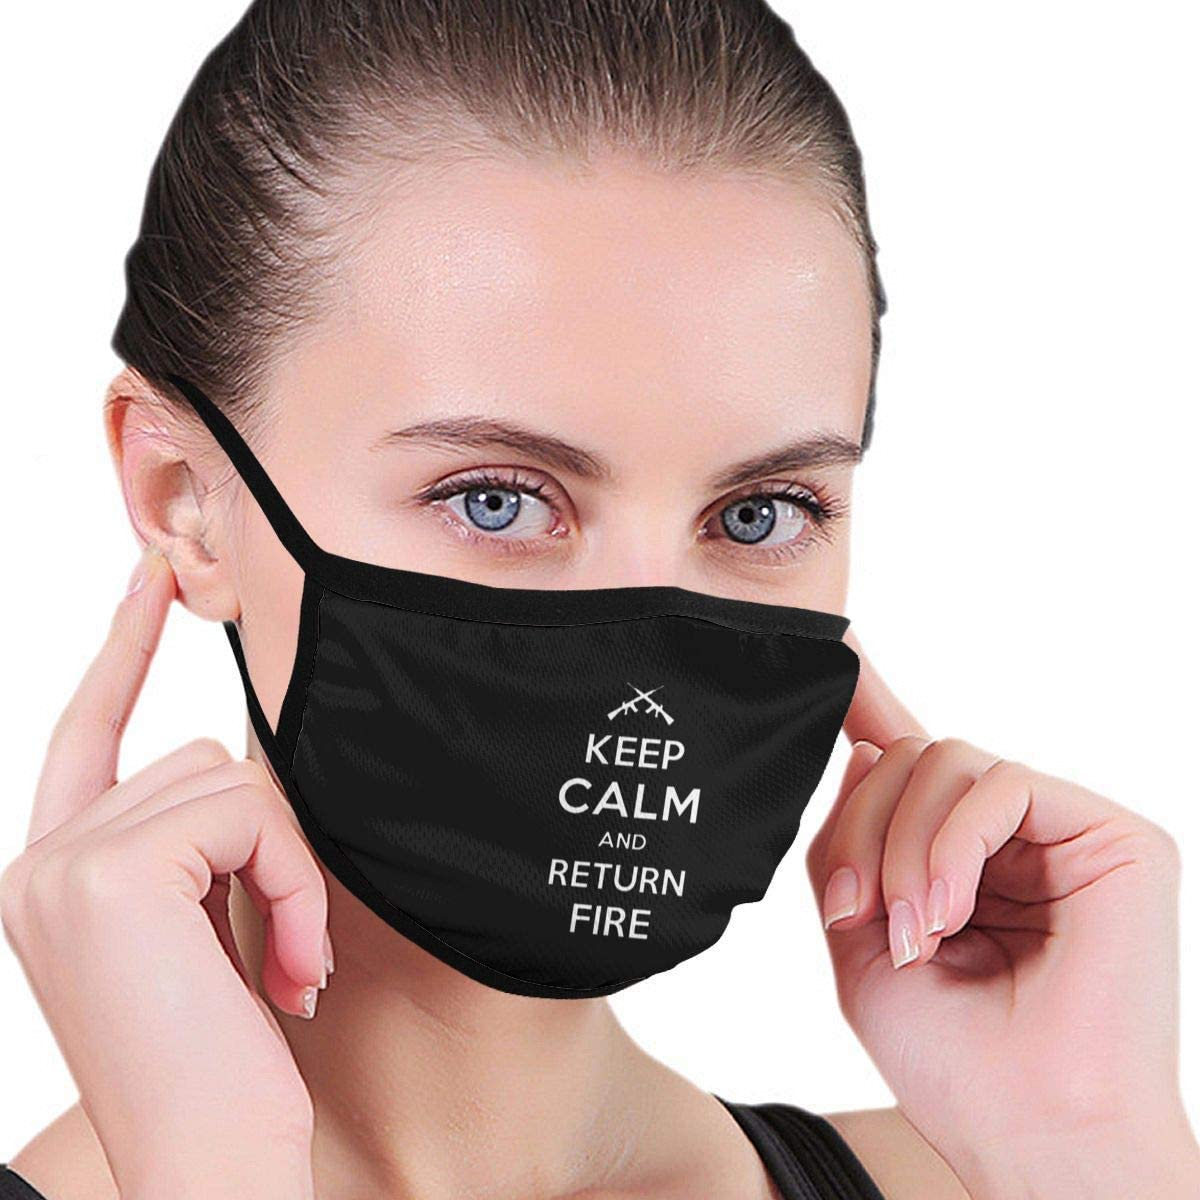 BOKUTT Fashion cartoon windbreak Face mask Dust and odor mask Keep Calm Return Fire Adult Kids Reusable Print Warm Washable Nose For Travel-Washable and reusable